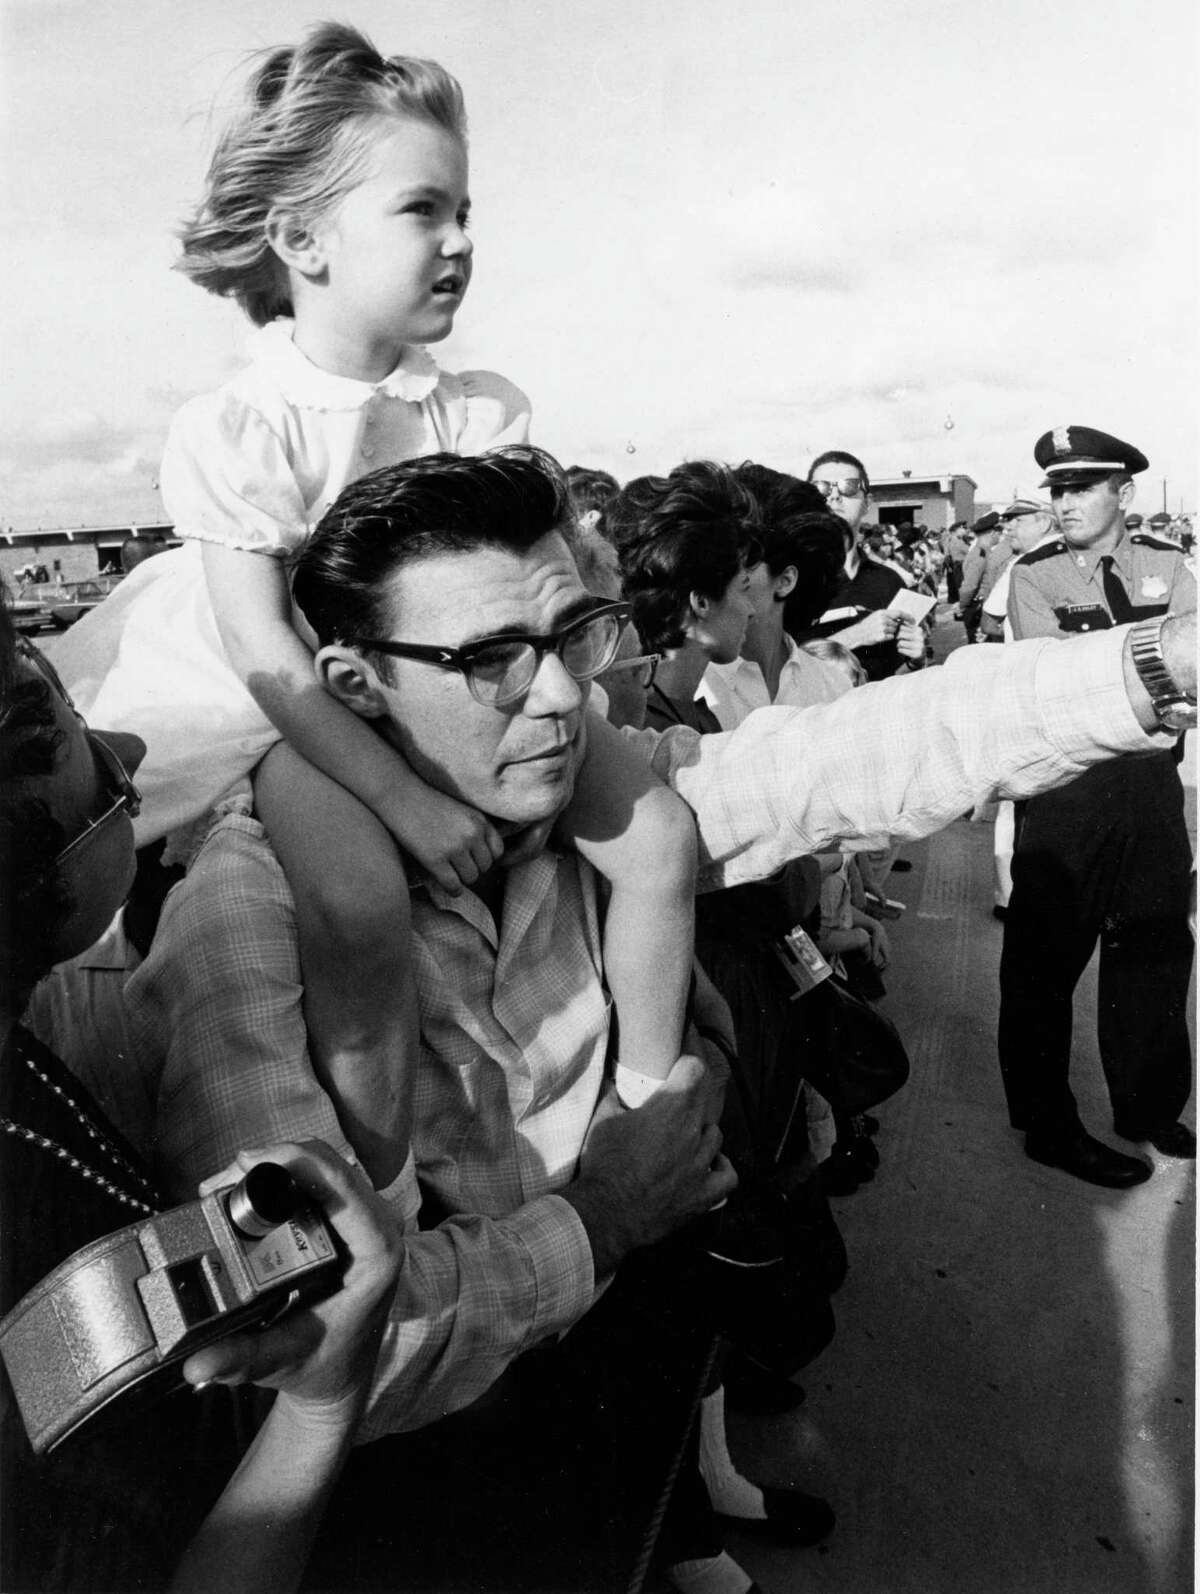 Large crowds waited at the airport and along the streets of Houston to greet Pres. Kennedy. Mike Arteberry of Alvin gives 4-year-old Rebeca Lee Stevens a better view from his shoulders as they await the arrival of the President's airplane.